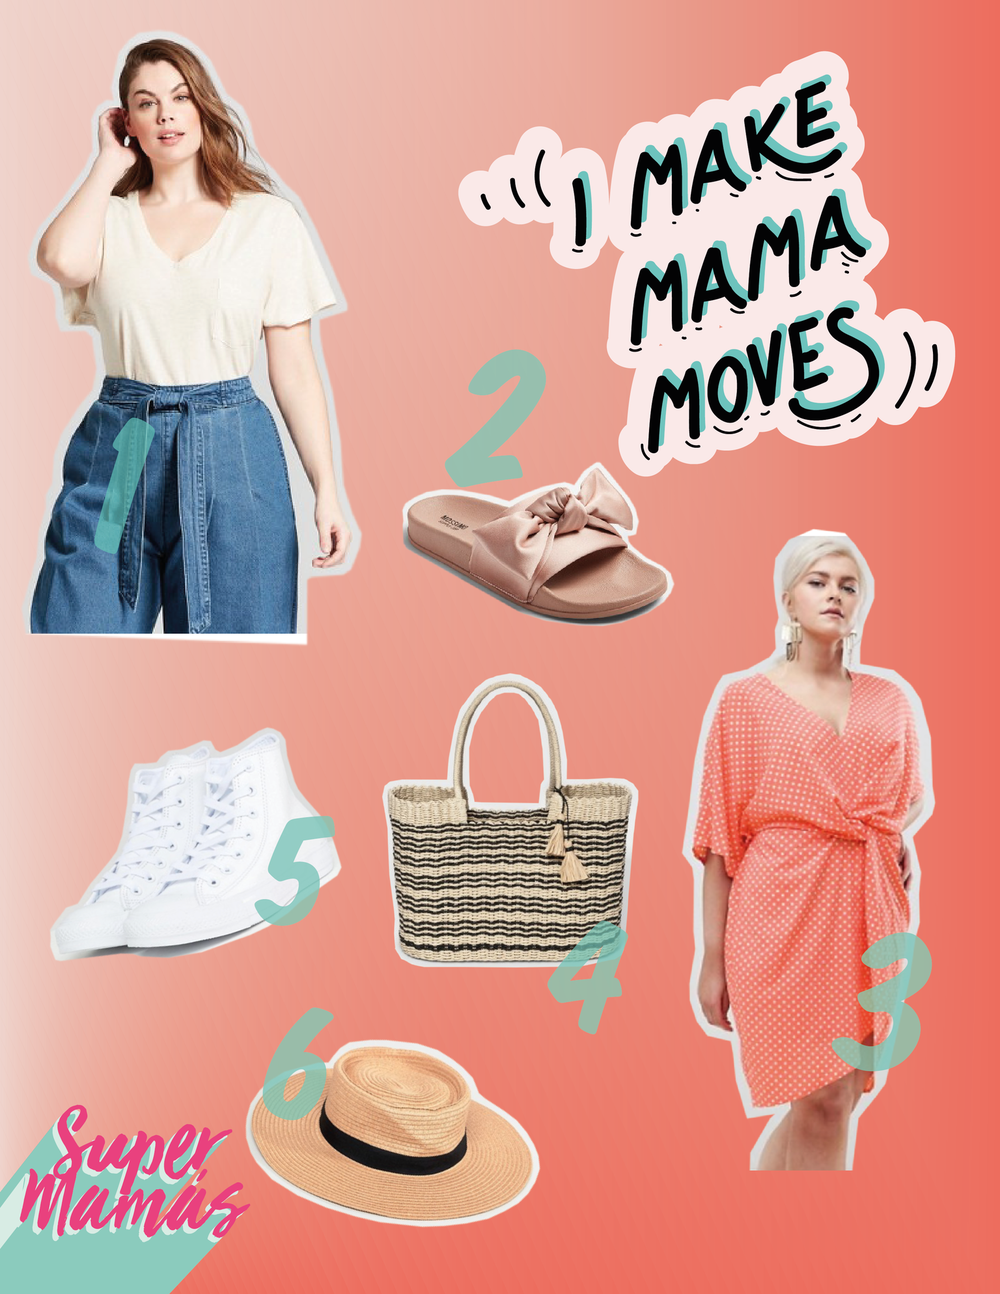 1.  Women's Plus Size Monterey Pocket V-Neck Short Sleeve T-Shirt  &  Women's Plus Size Tie Front Wide Leg Jeans  2.  Women's Julisa Slide Sandals with a Bow - Mossimo Supply Co.™  3.  Missguided Plus Twist Front Polka Dot Dress  4.  Cut Out Straw Tote Handbag - A New Day™  5.  Converse White Leather High Top Sneakers  6.  Warehouse Straw Sun Hat